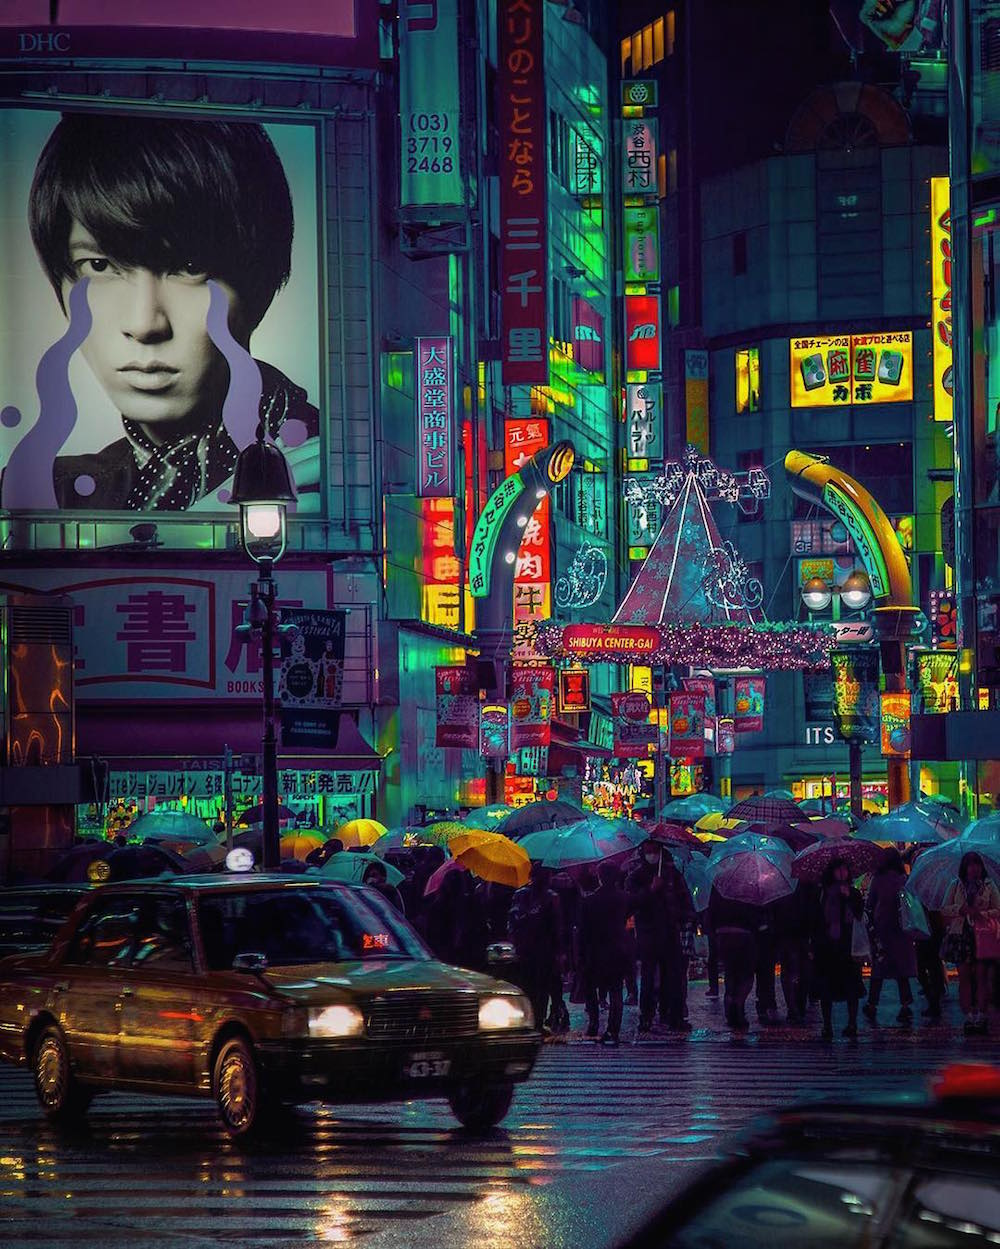 Amazing Neon Photos of Tokyo's Colorful Night Life